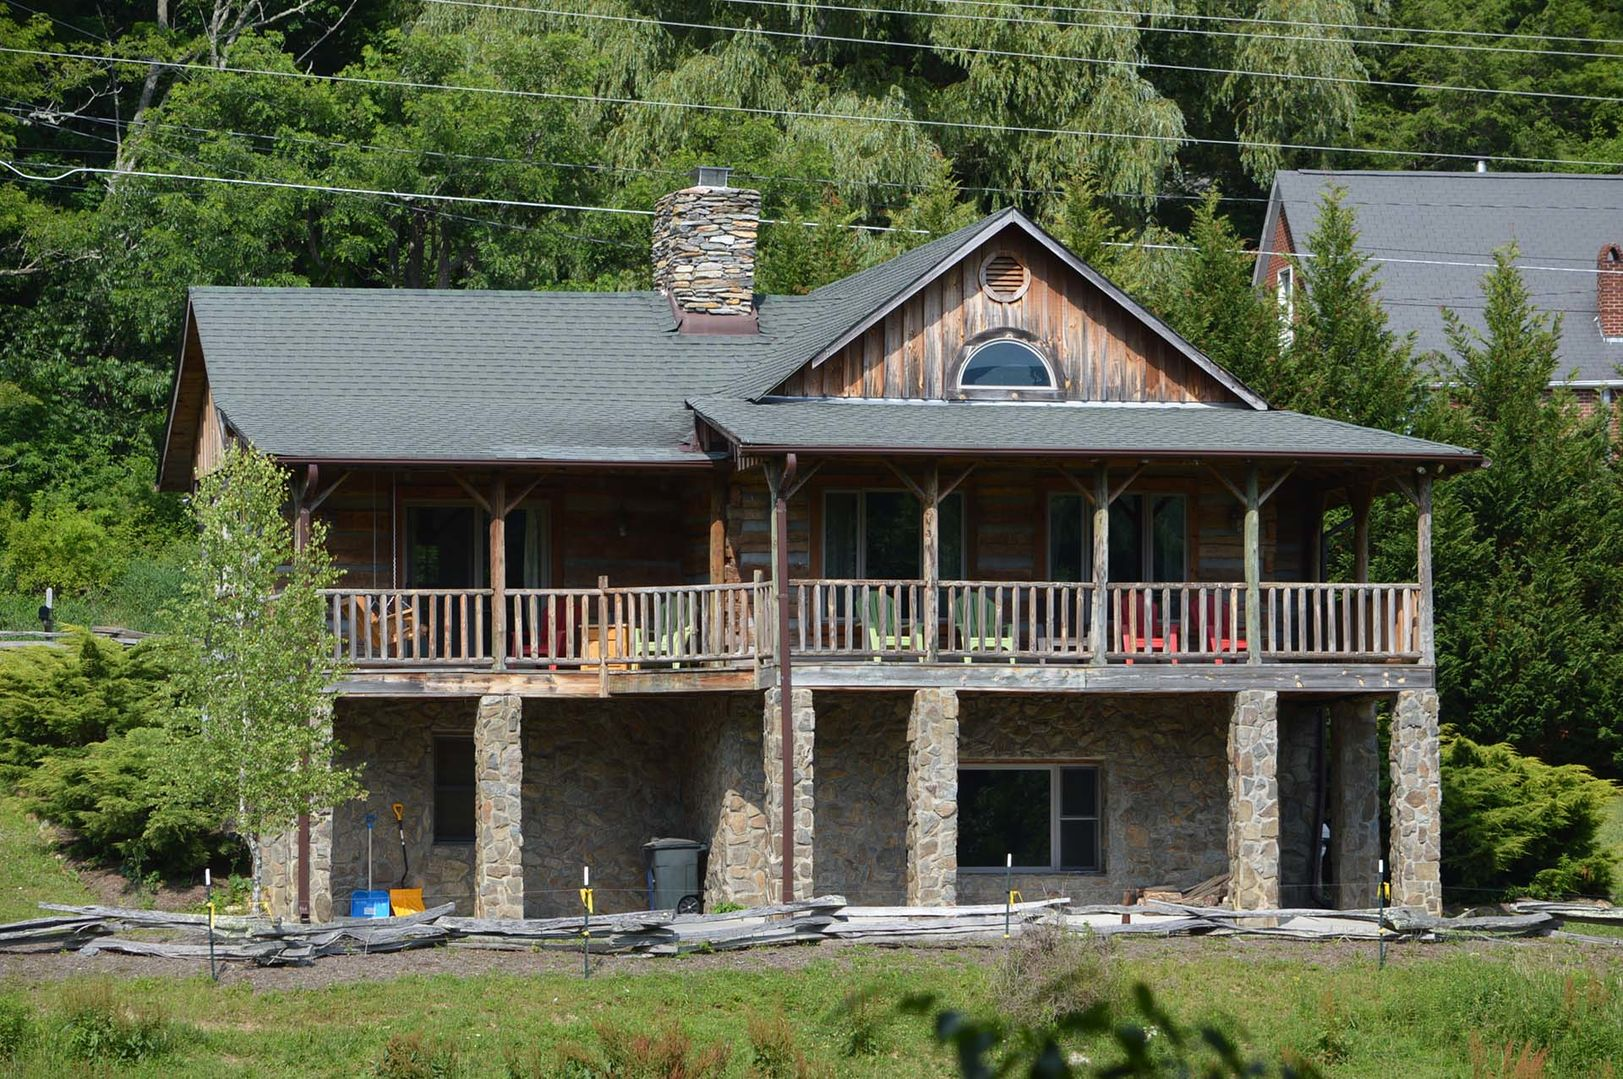 The Hiding place awaits your friends and family vacation!